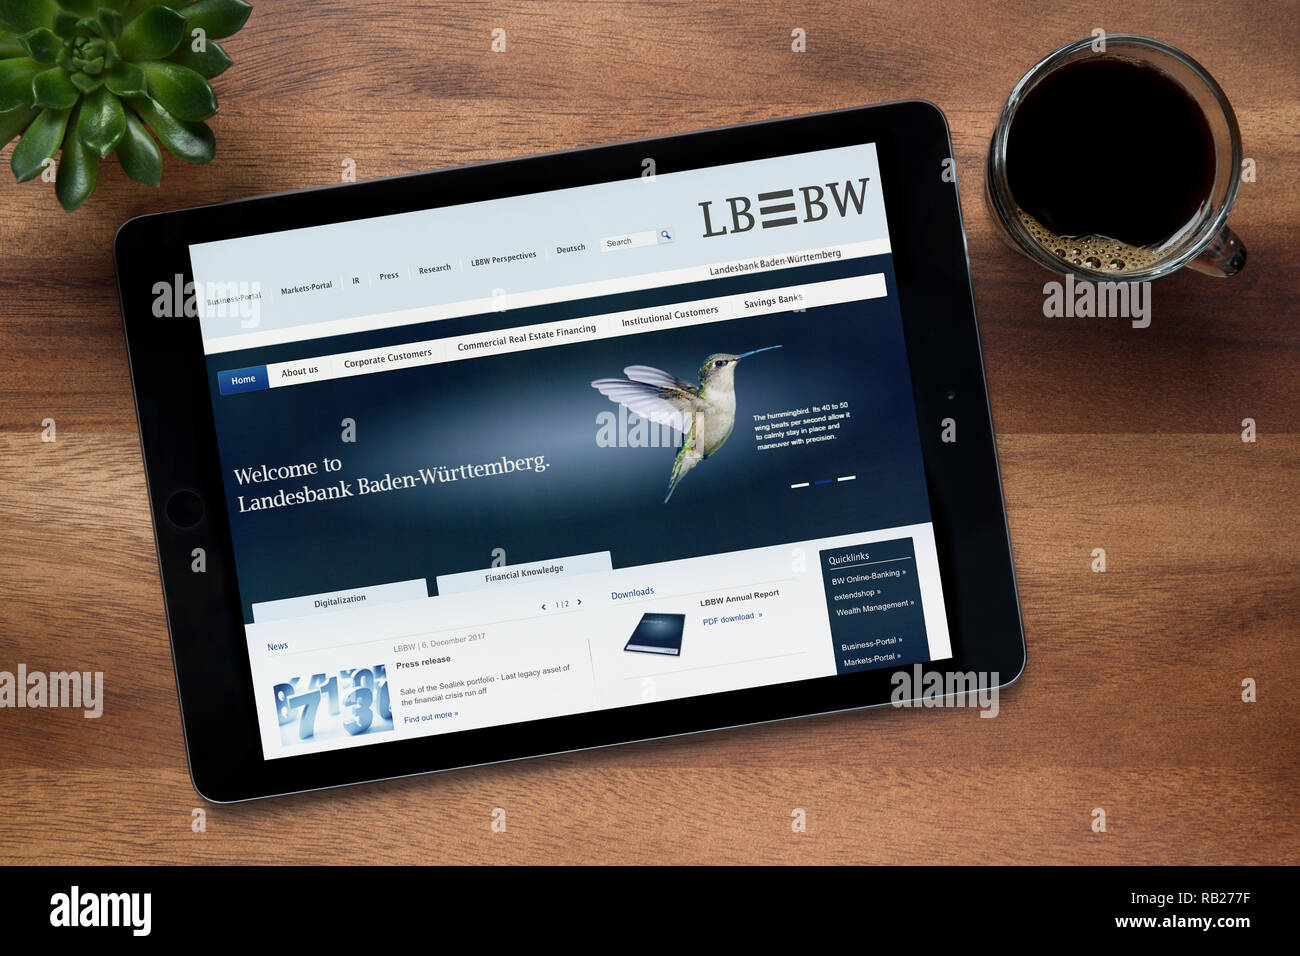 The website of LB BW is seen on an iPad tablet, on a wooden table along with an espresso coffee and a house plant (Editorial use only). - Stock Image